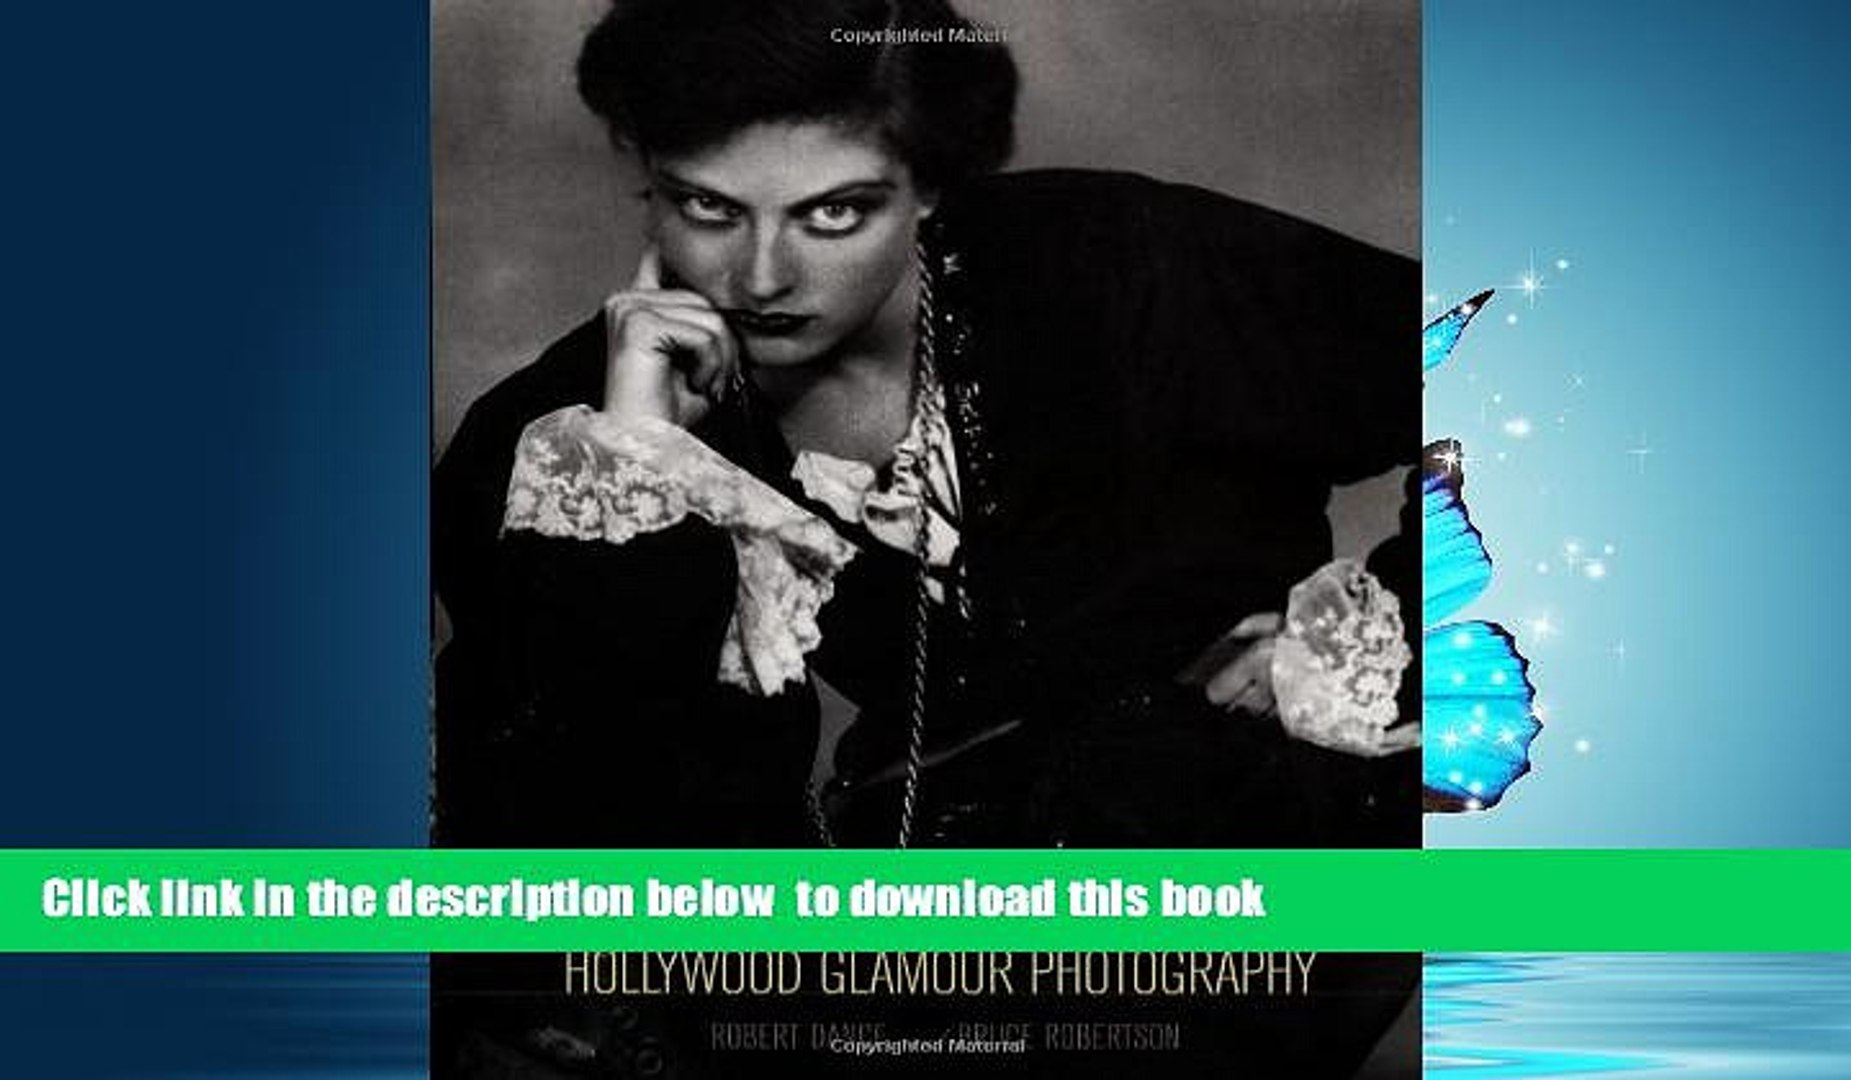 PDF [FREE] DOWNLOAD Ruth Harriet Louise and Hollywood Glamour Photography  (Santa Barbara Museum